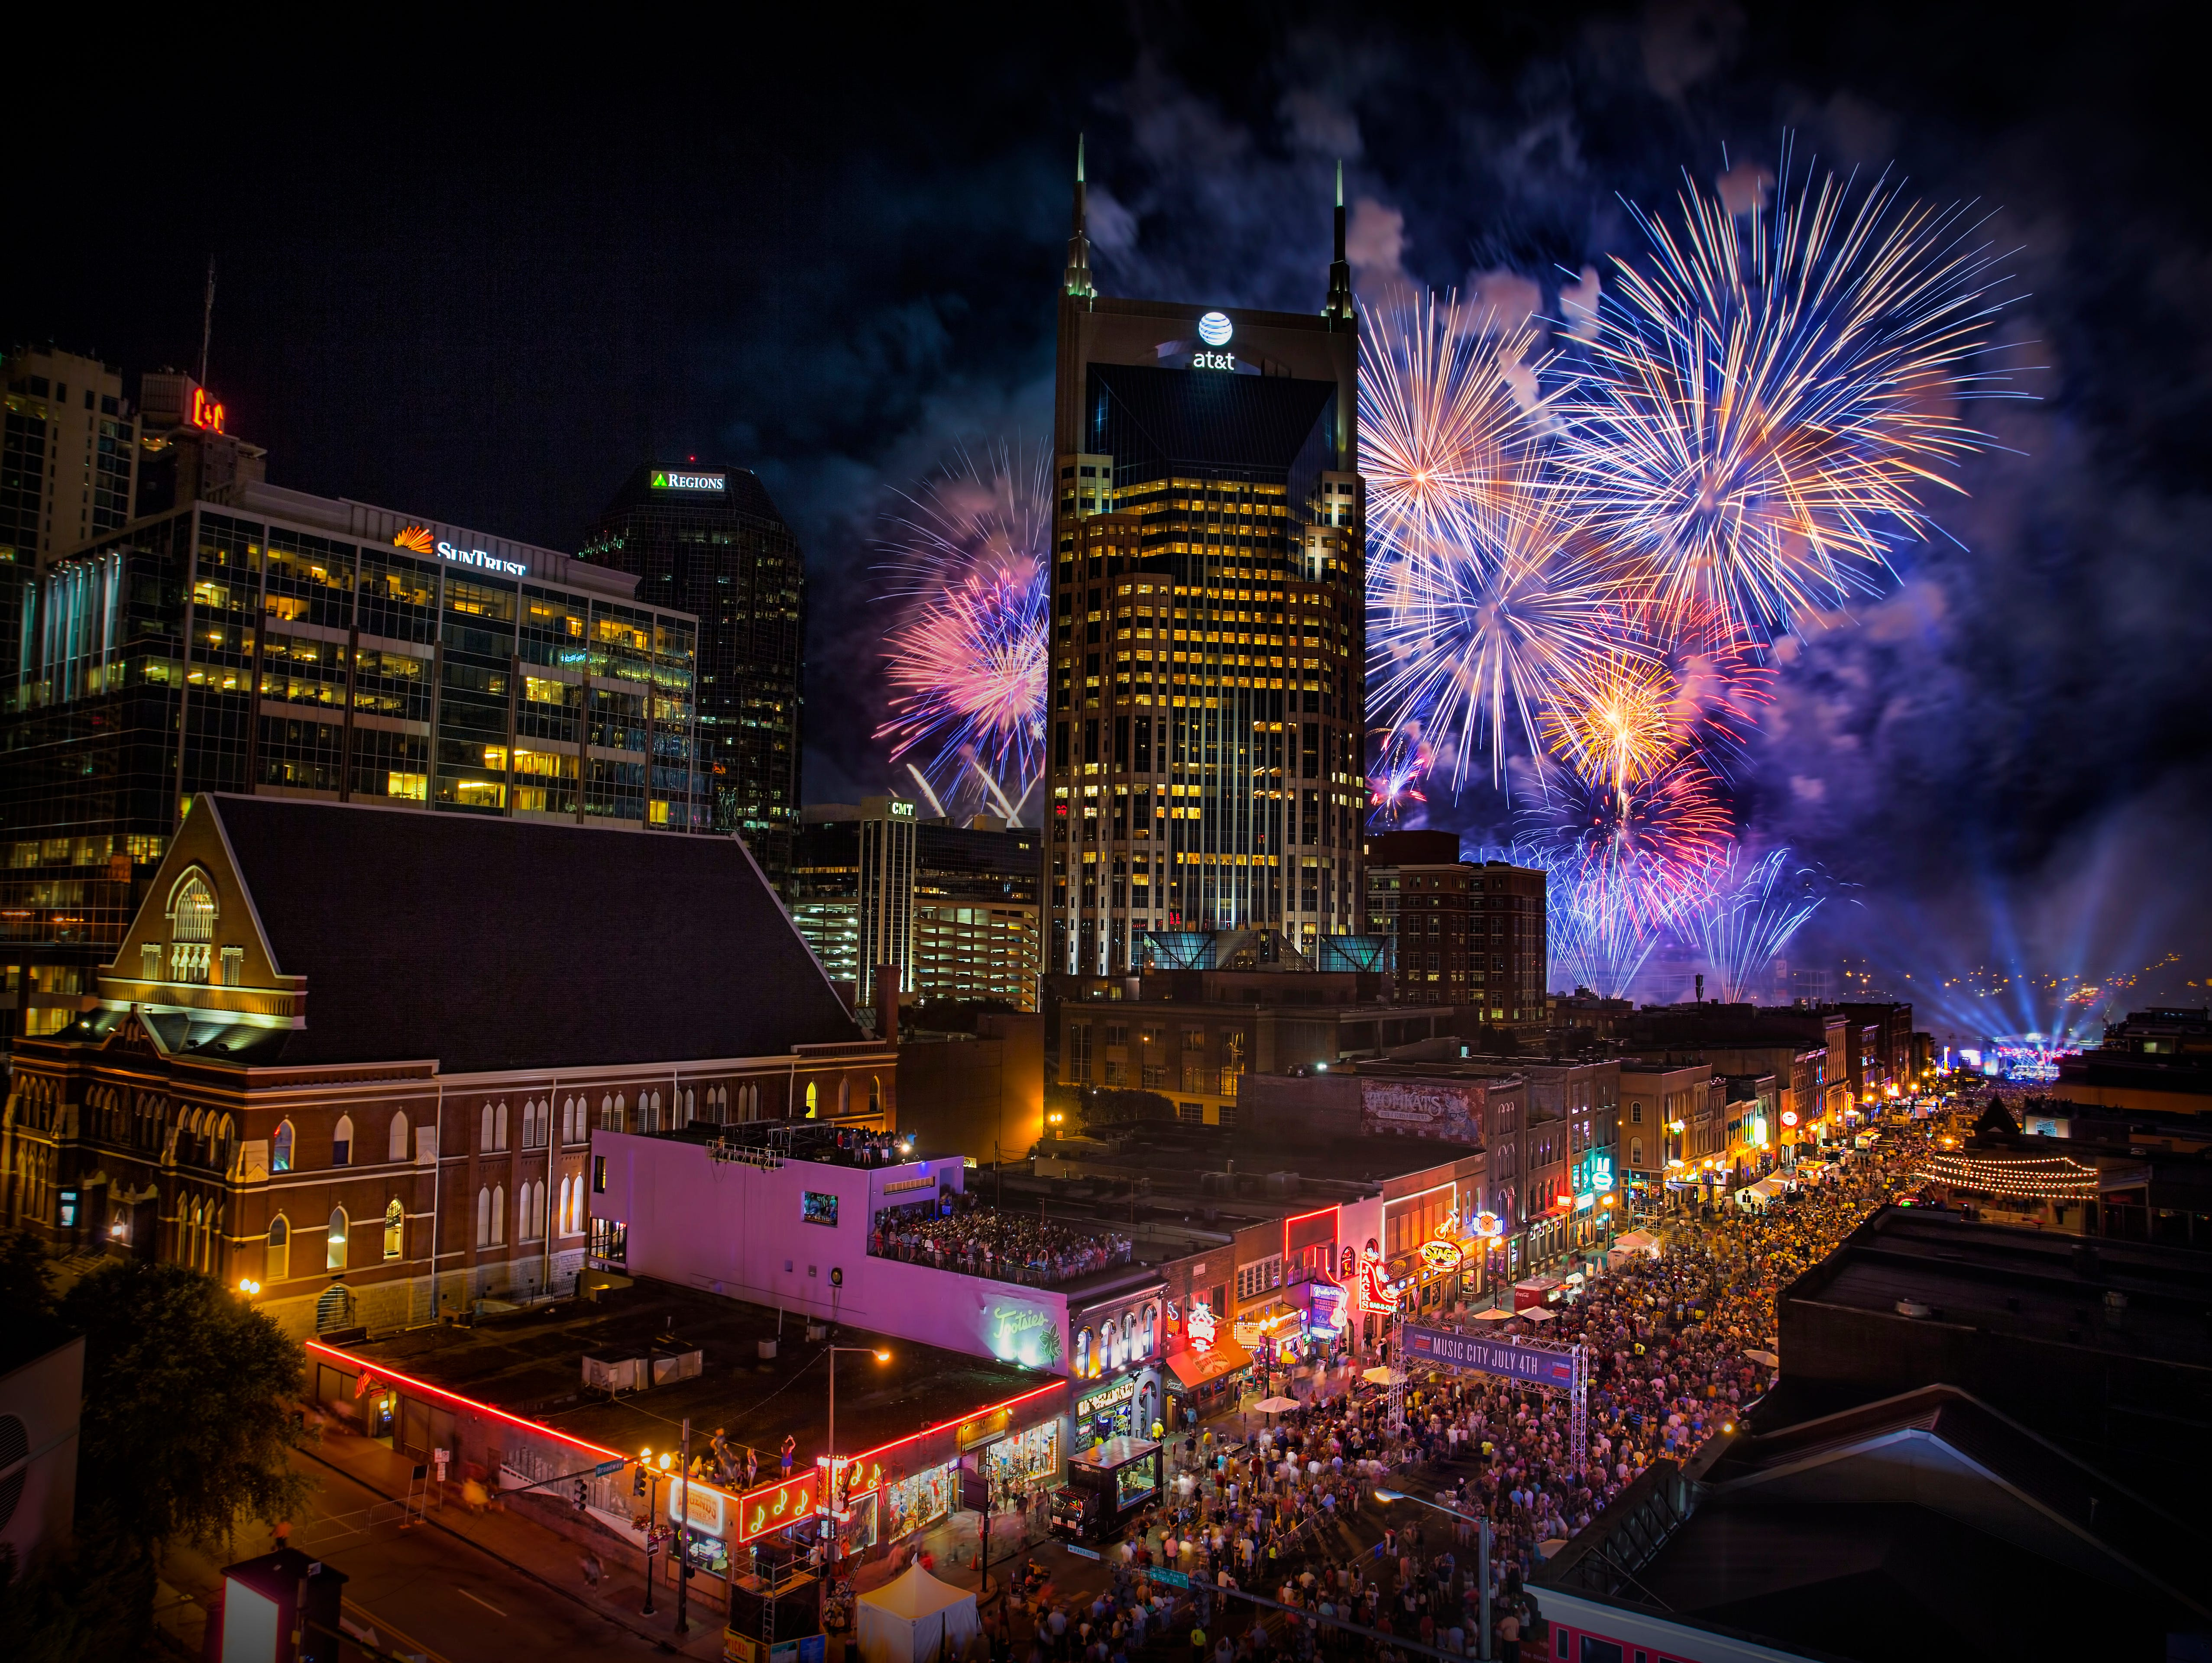 Enter to win a 5 day/4 night trip to Music City, complete with a VIP concert & firework experience!